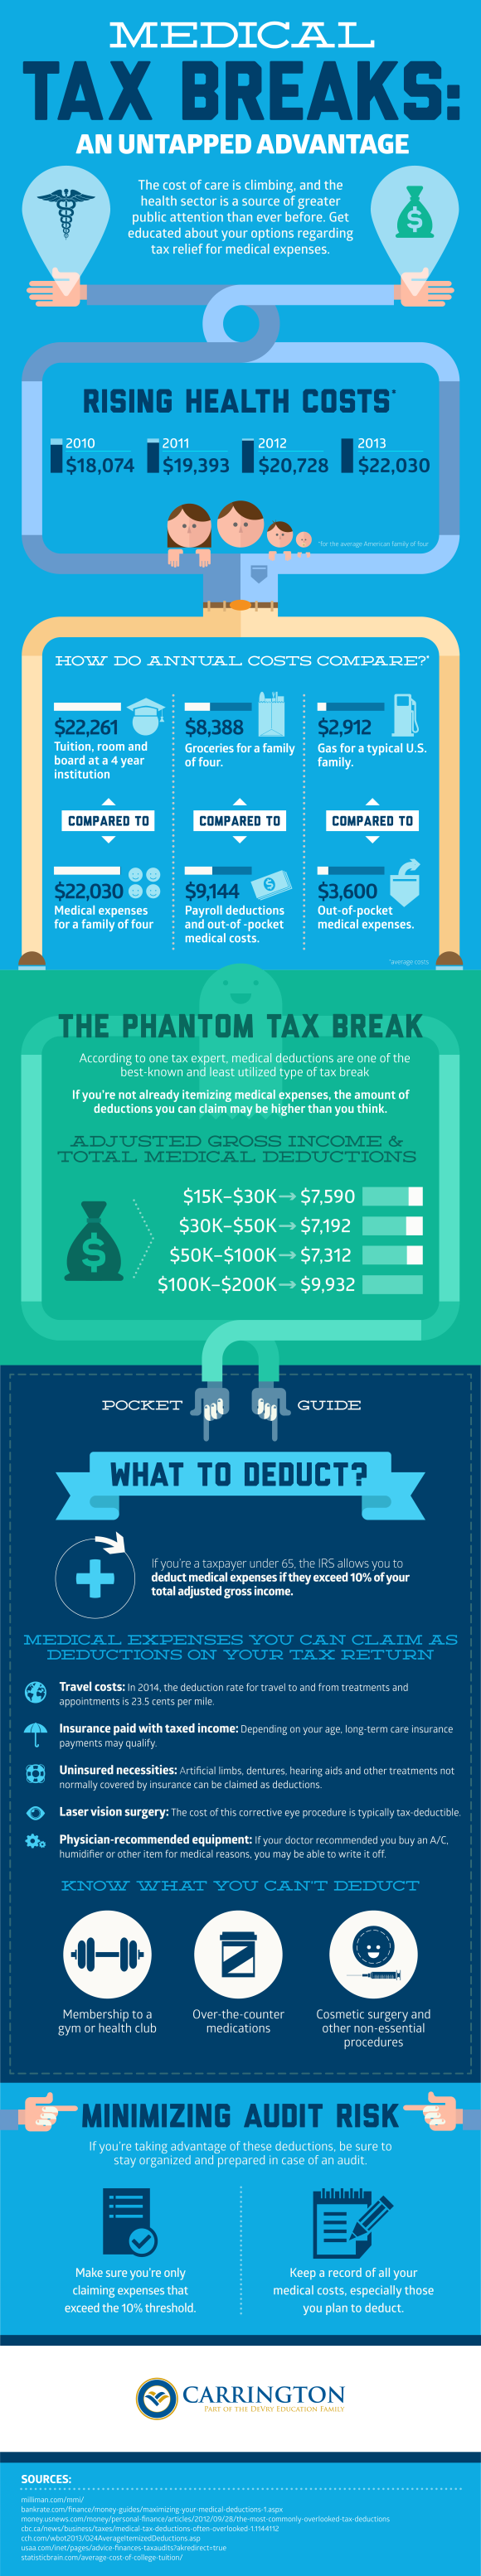 Medical-Tax-Breaks-Infographic (1)